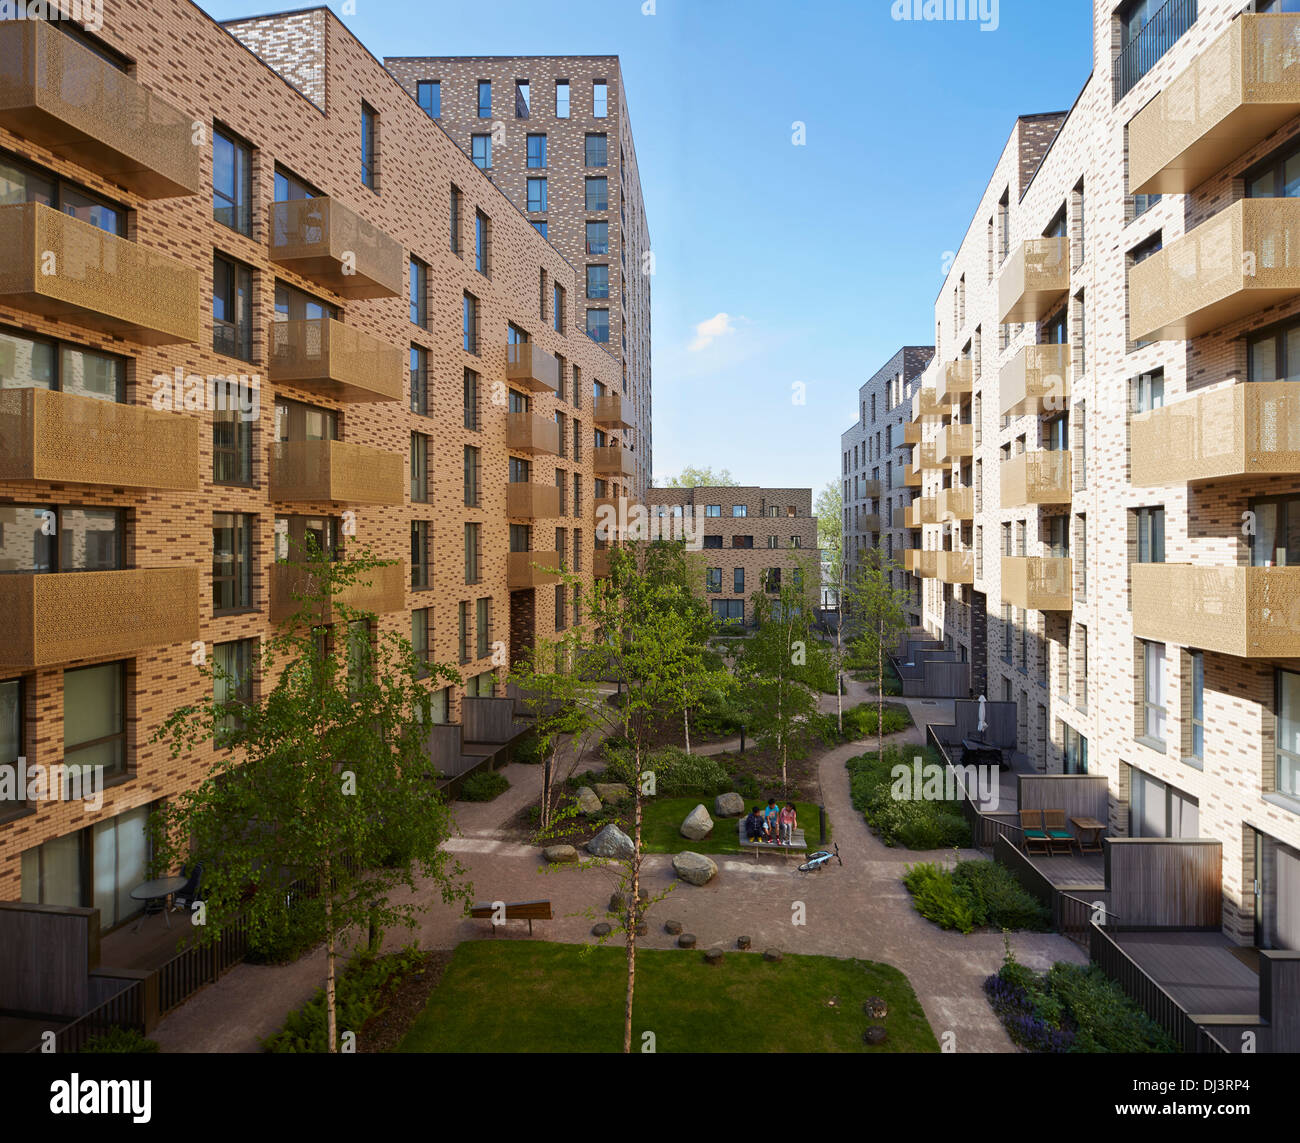 Apt Complex: ST ANDREW'S APARTMENT COMPLEX BROMLEY-BY-BOW, London